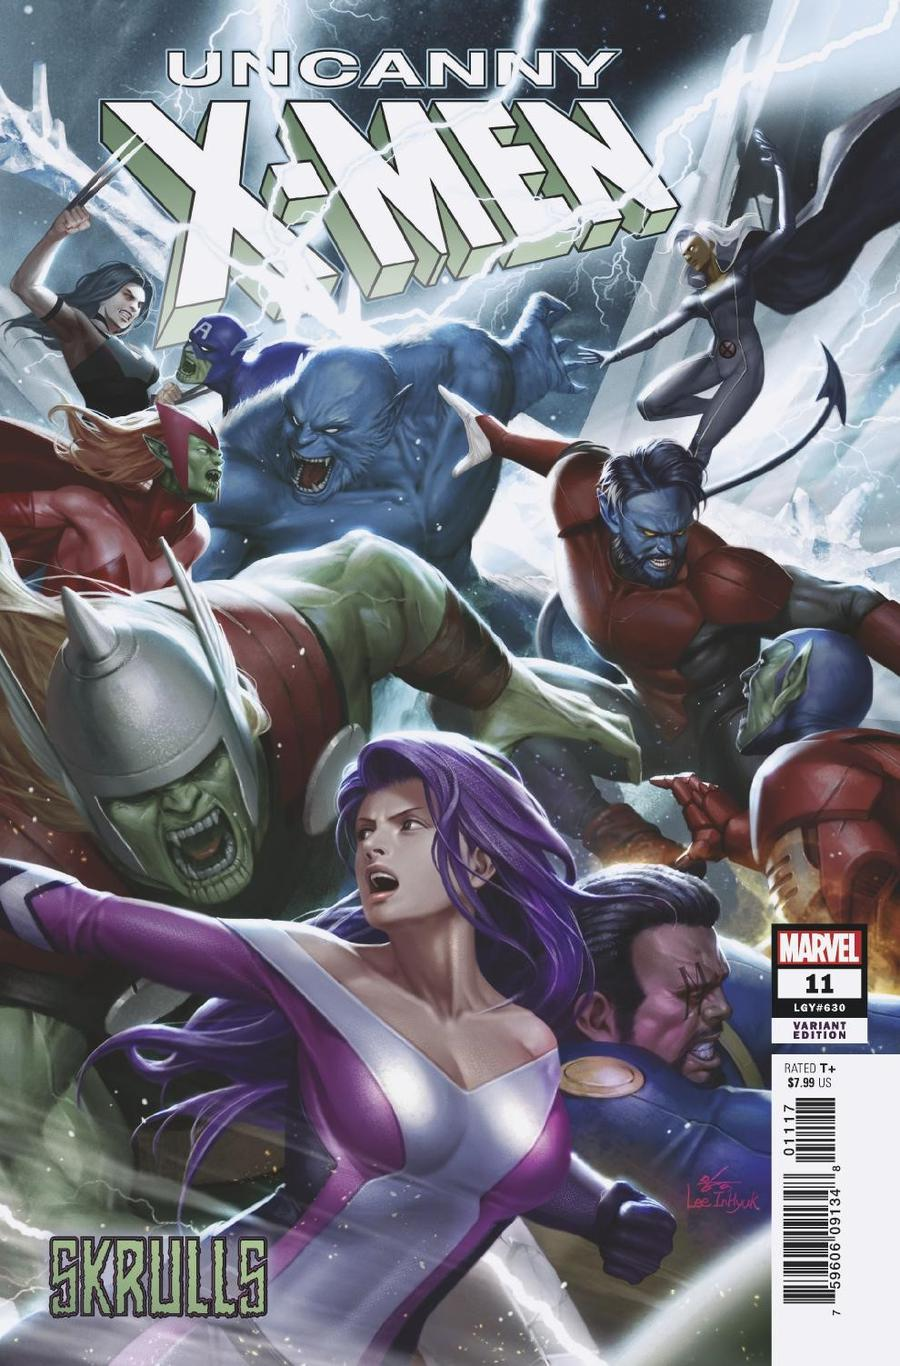 Uncanny X-Men Vol 5 #11 Cover E Variant Inhyuk Lee Skrulls Cover